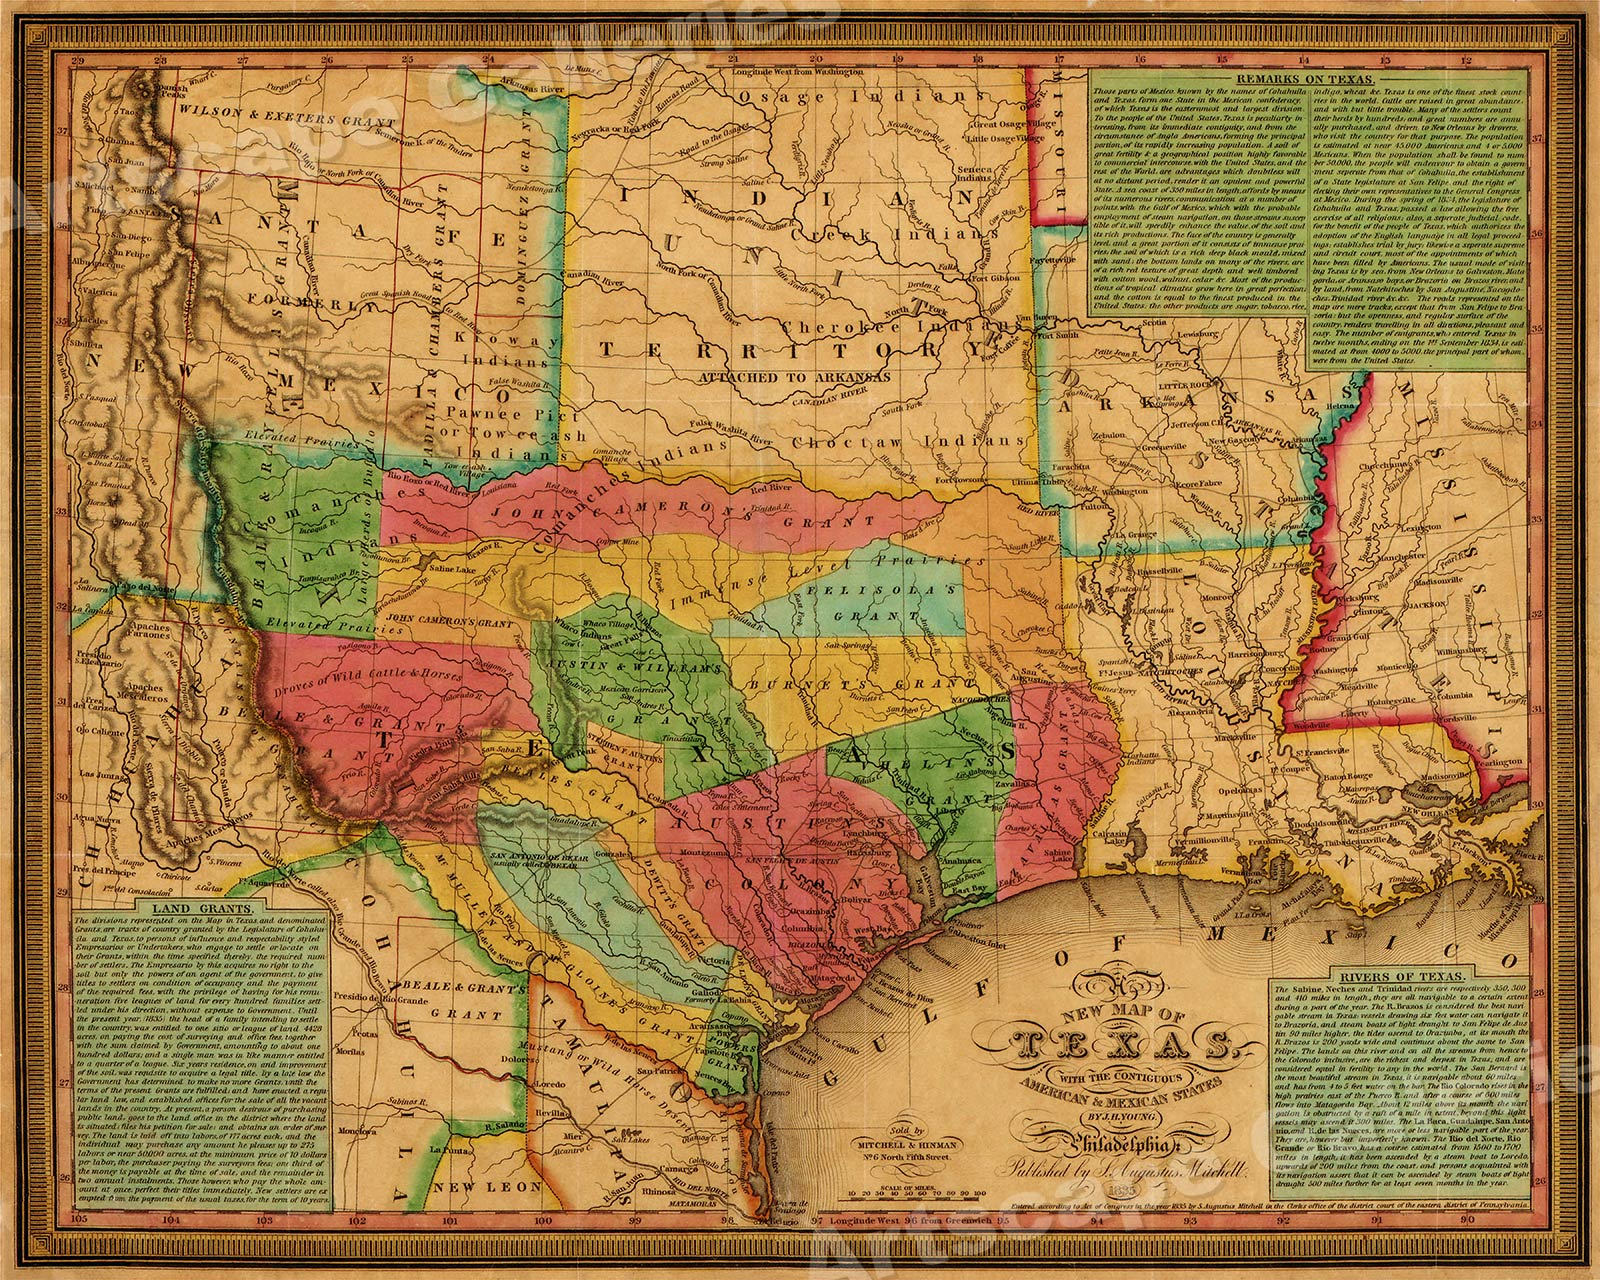 Details about 1835 Texas, Indian Territory & Mexican States Map Wall Map -  20x24